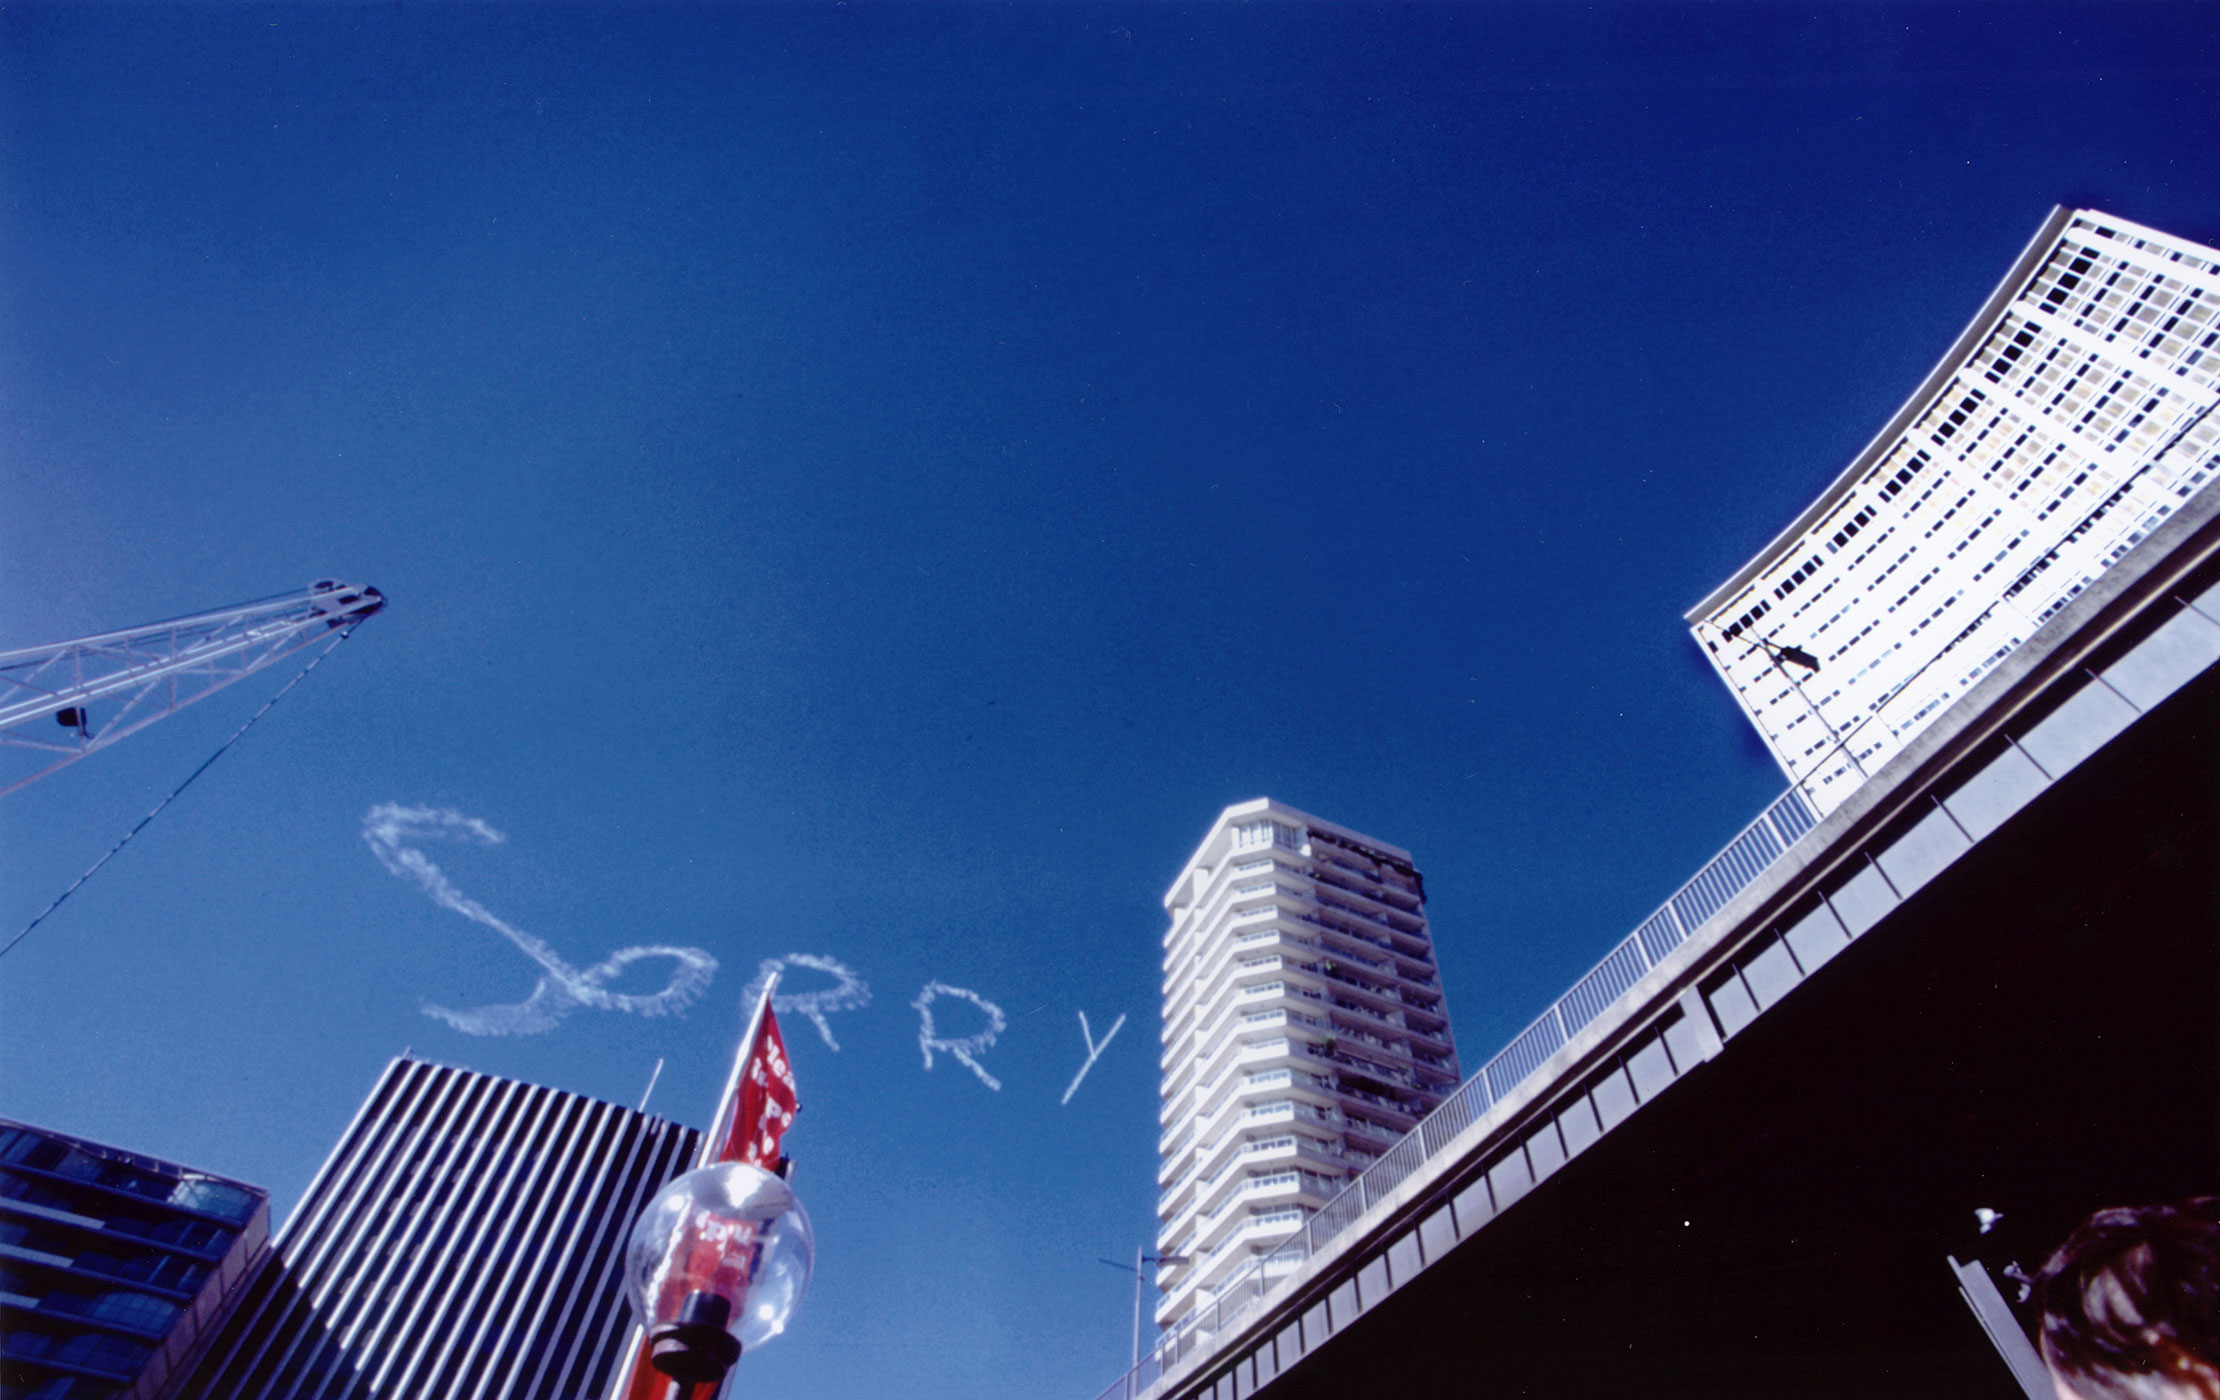 A colour photo showing 'SORRY' written in white vapour trail against a blue sky. The foregrounds shows an urban skyline with the top of a crane visible at the left and multi-storey buildings rising to the right.